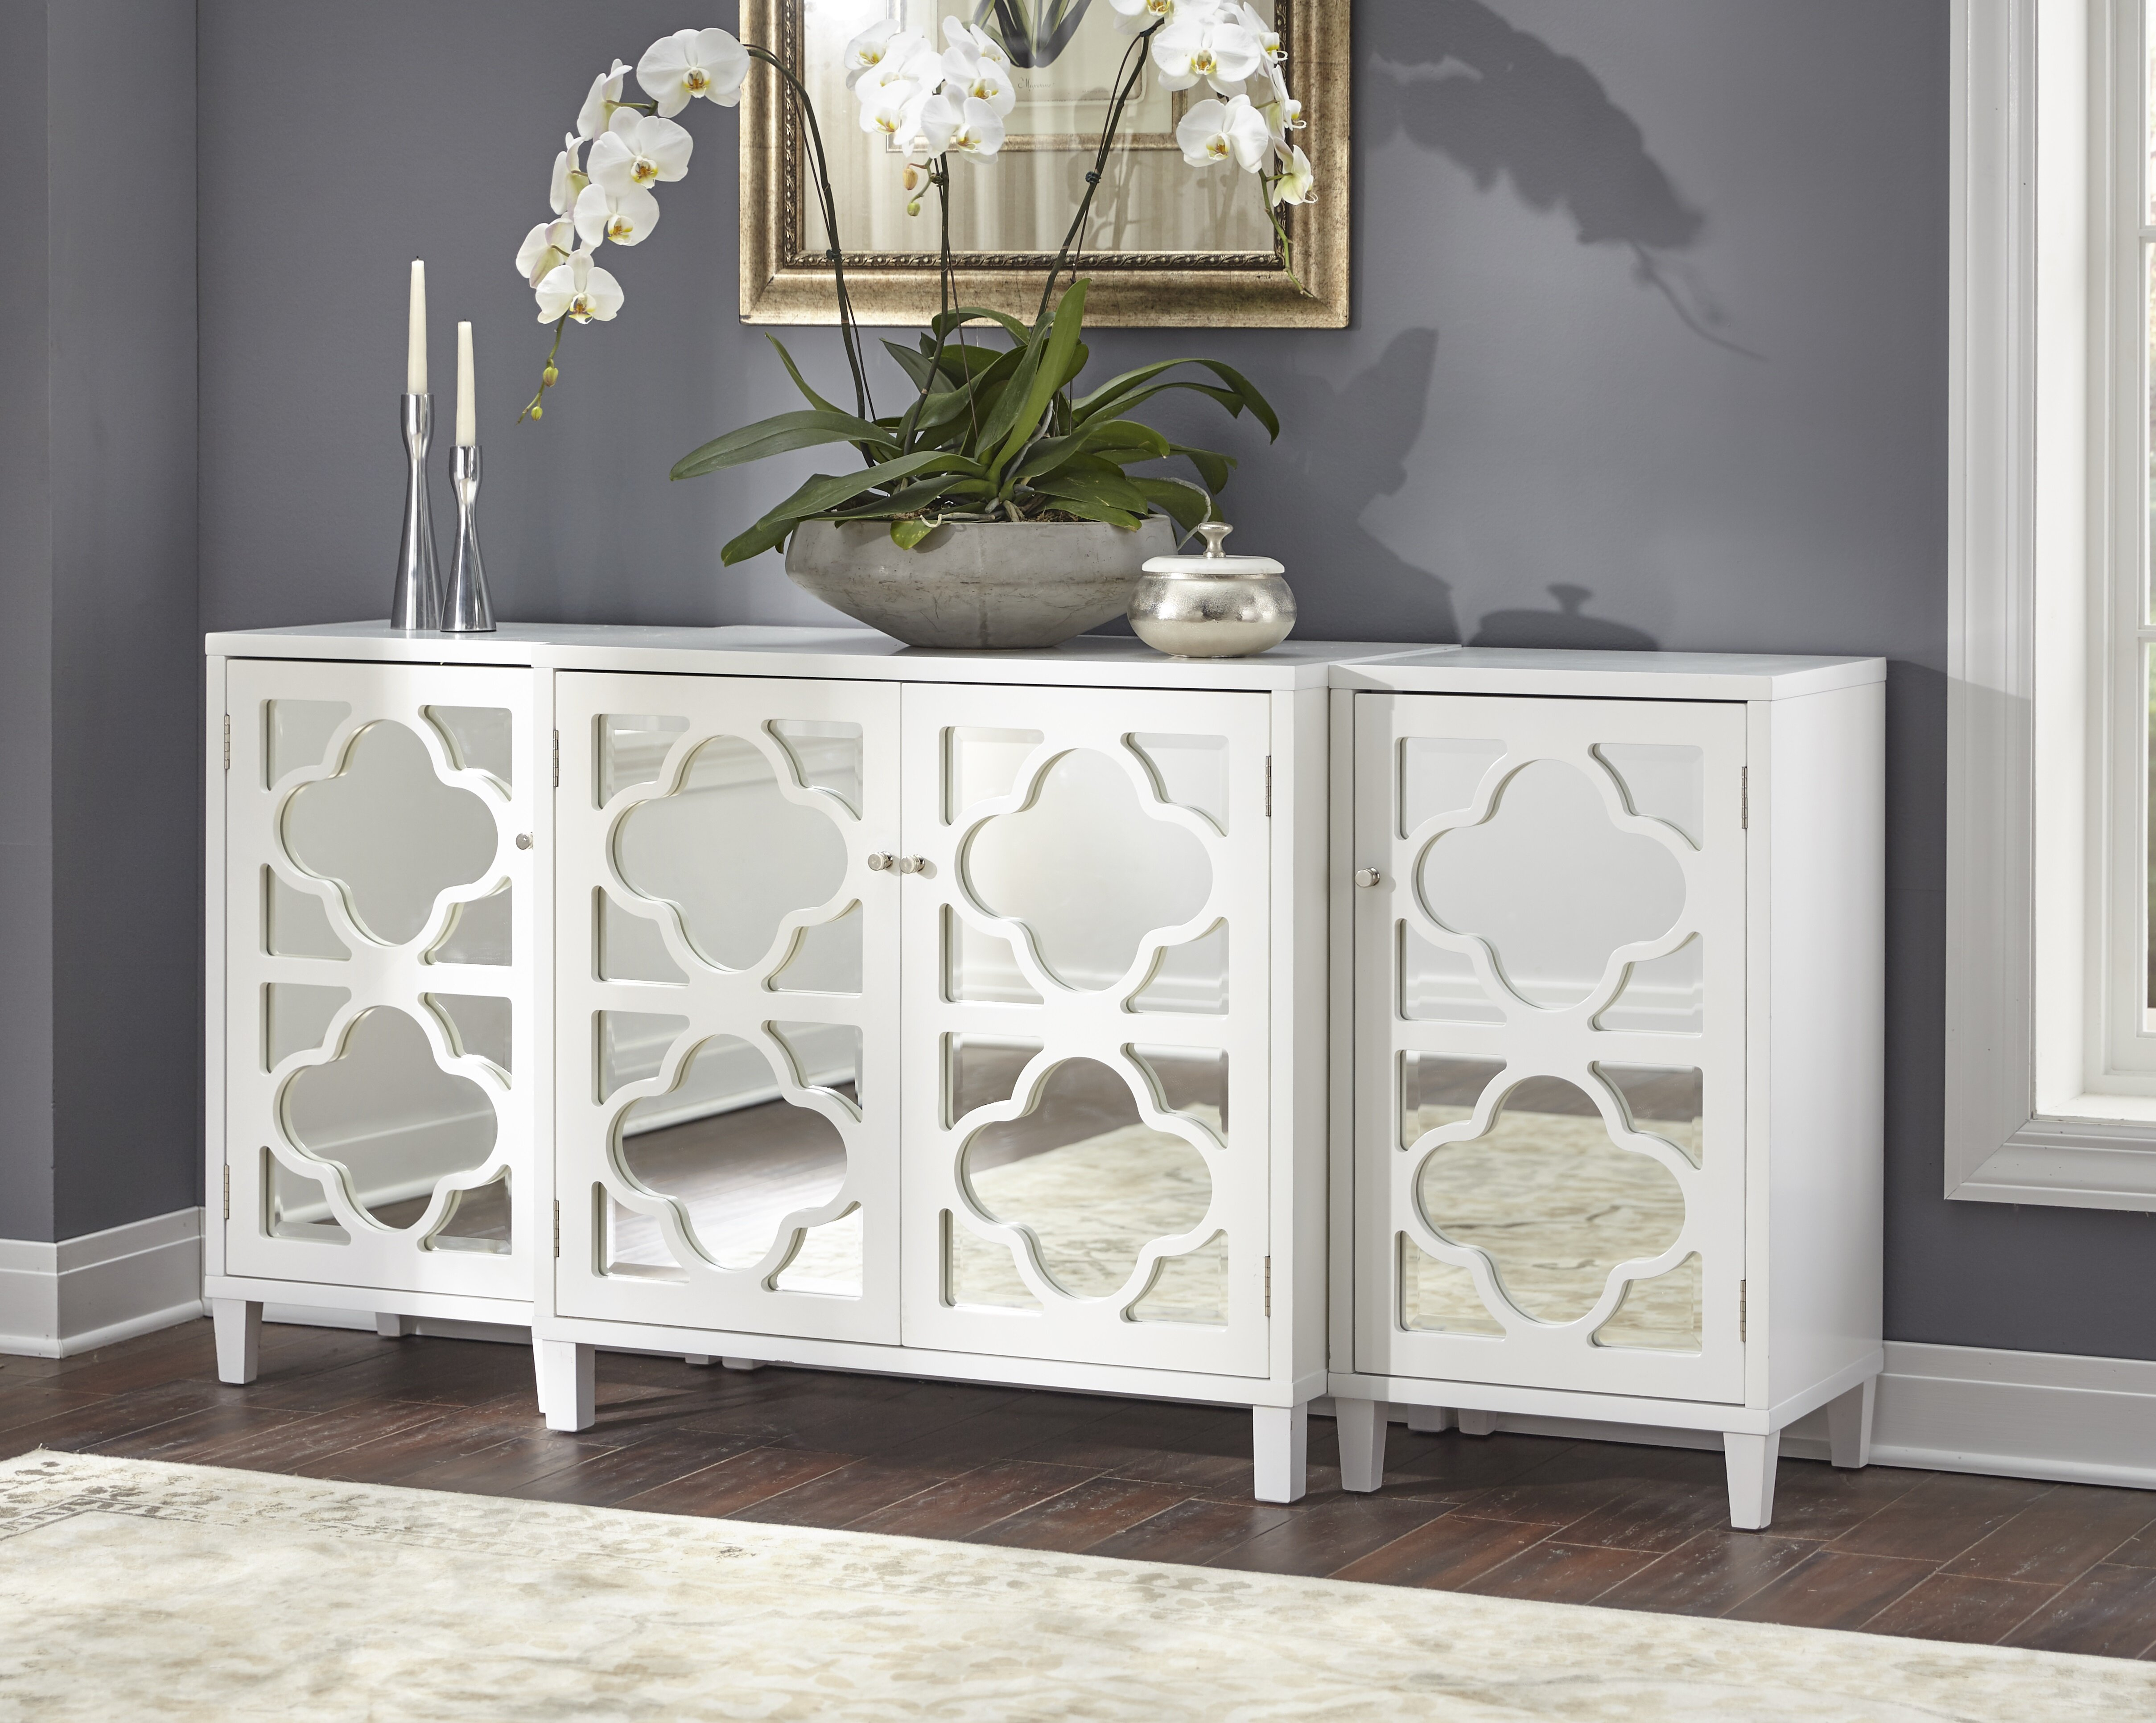 Charlton Home Gordy Mirrored 3 Piece Sideboard Set & Reviews Intended For Alkmene Sideboards (Image 9 of 30)